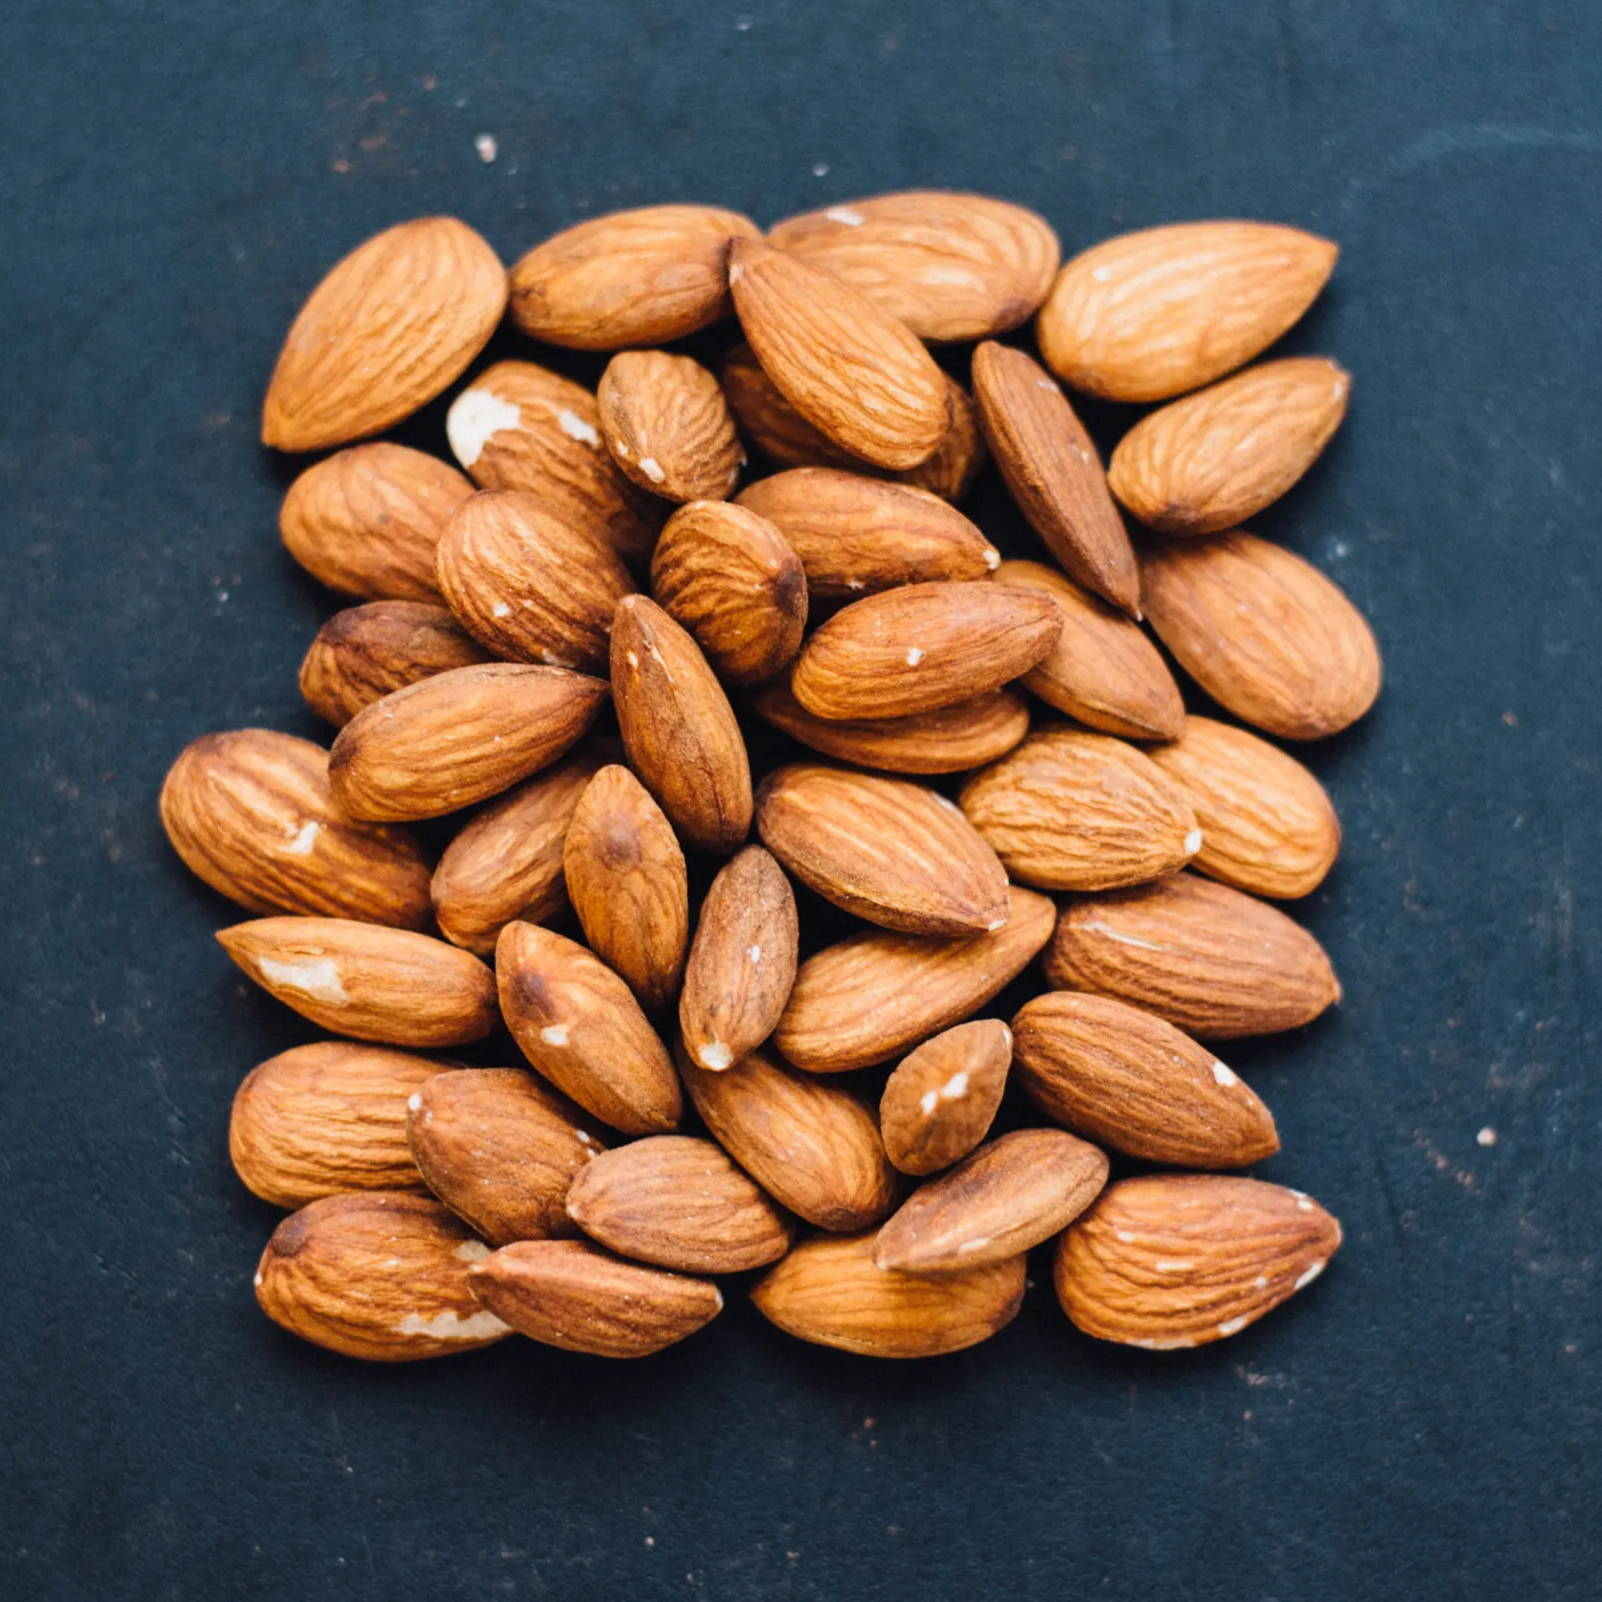 Almonds excellent source of protein